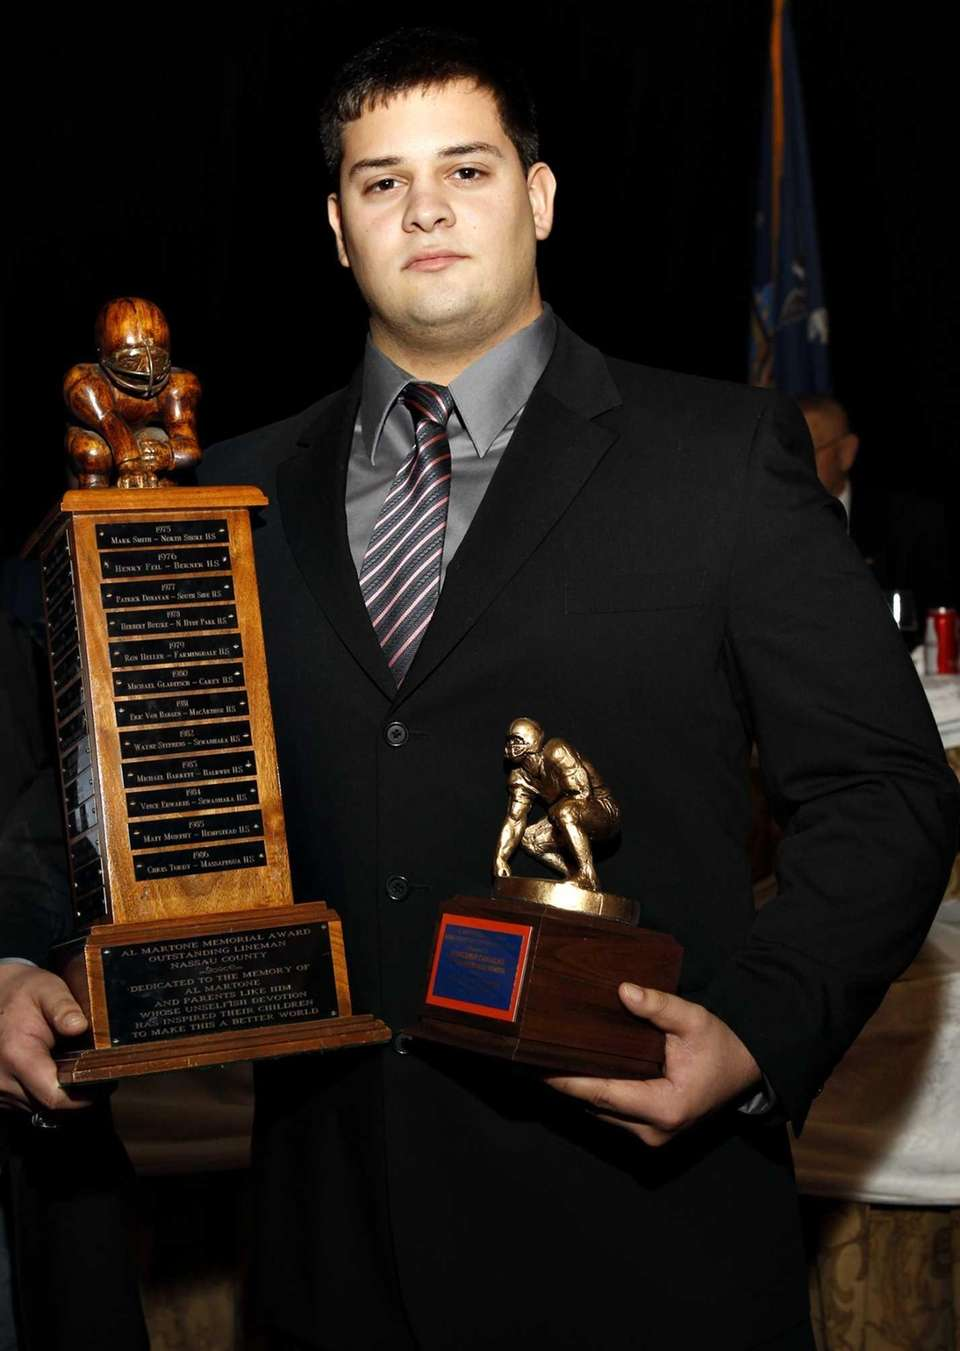 The 2012 Mattone Award for most outstanding lineman